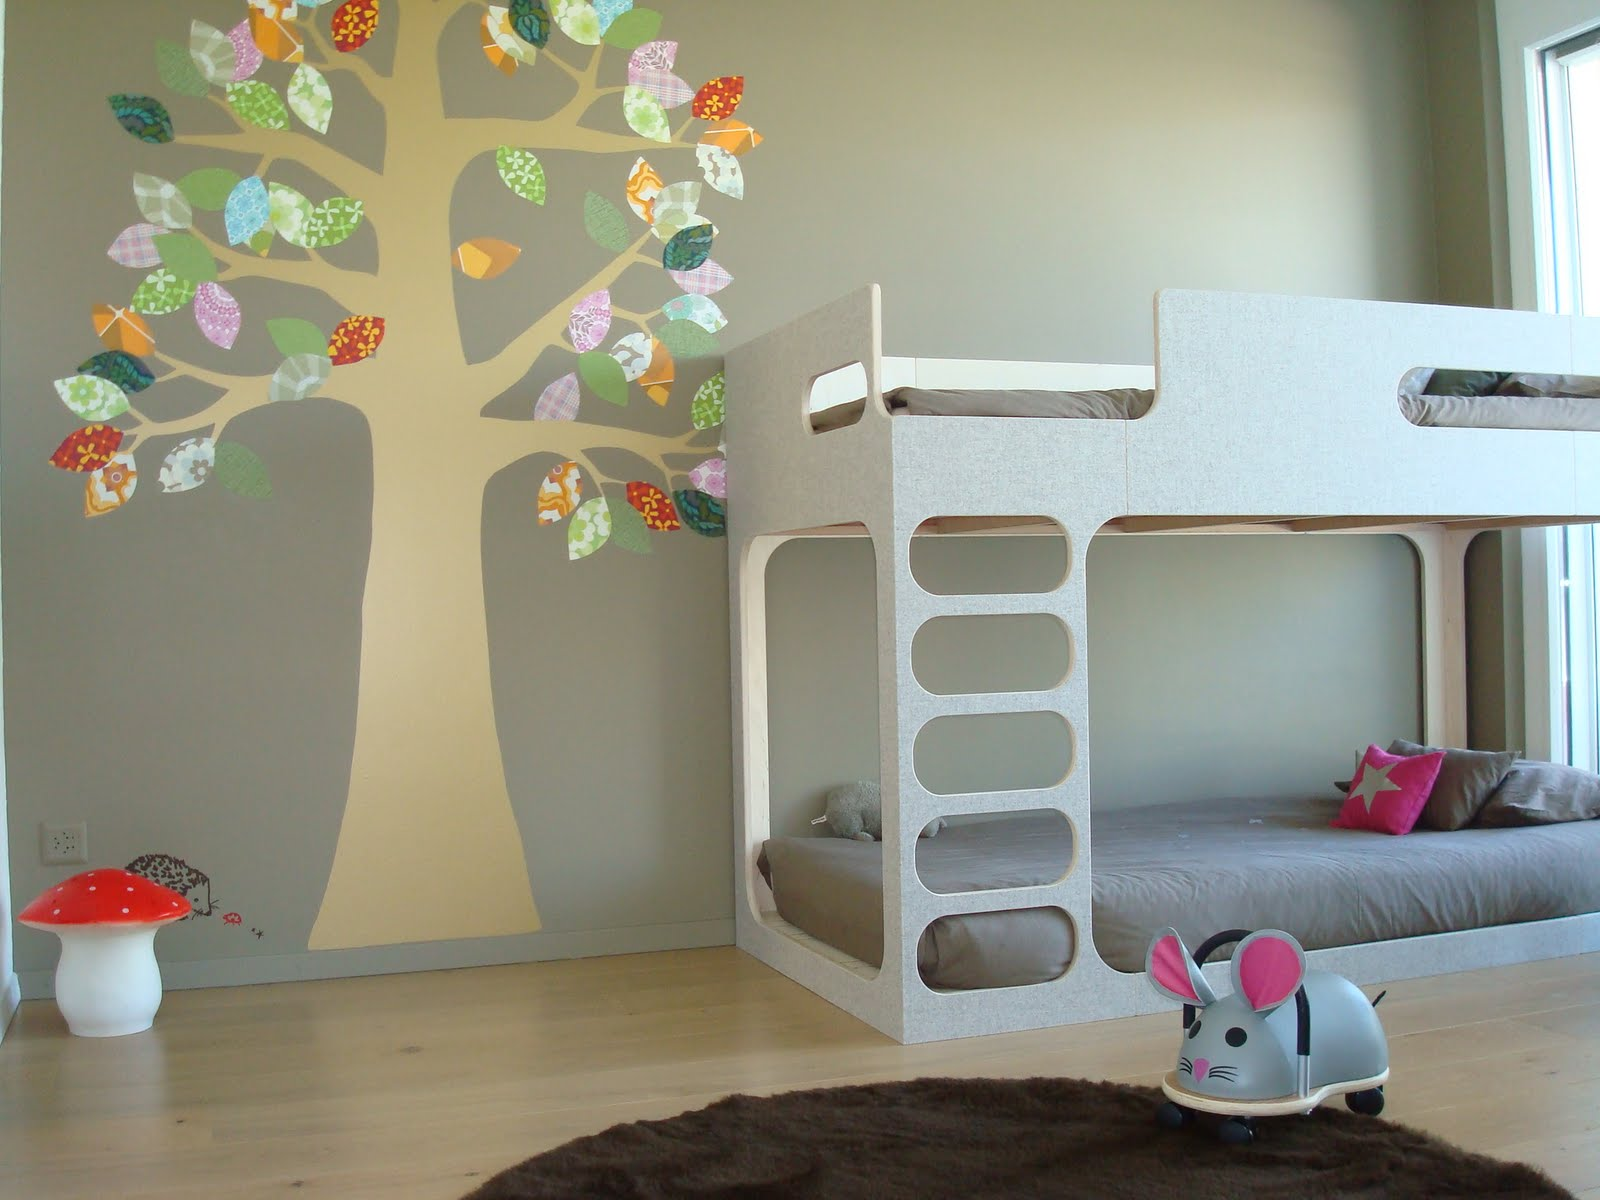 Childrens bedroom wallpaper ideas home decor uk for Kids paint bedroom ideas